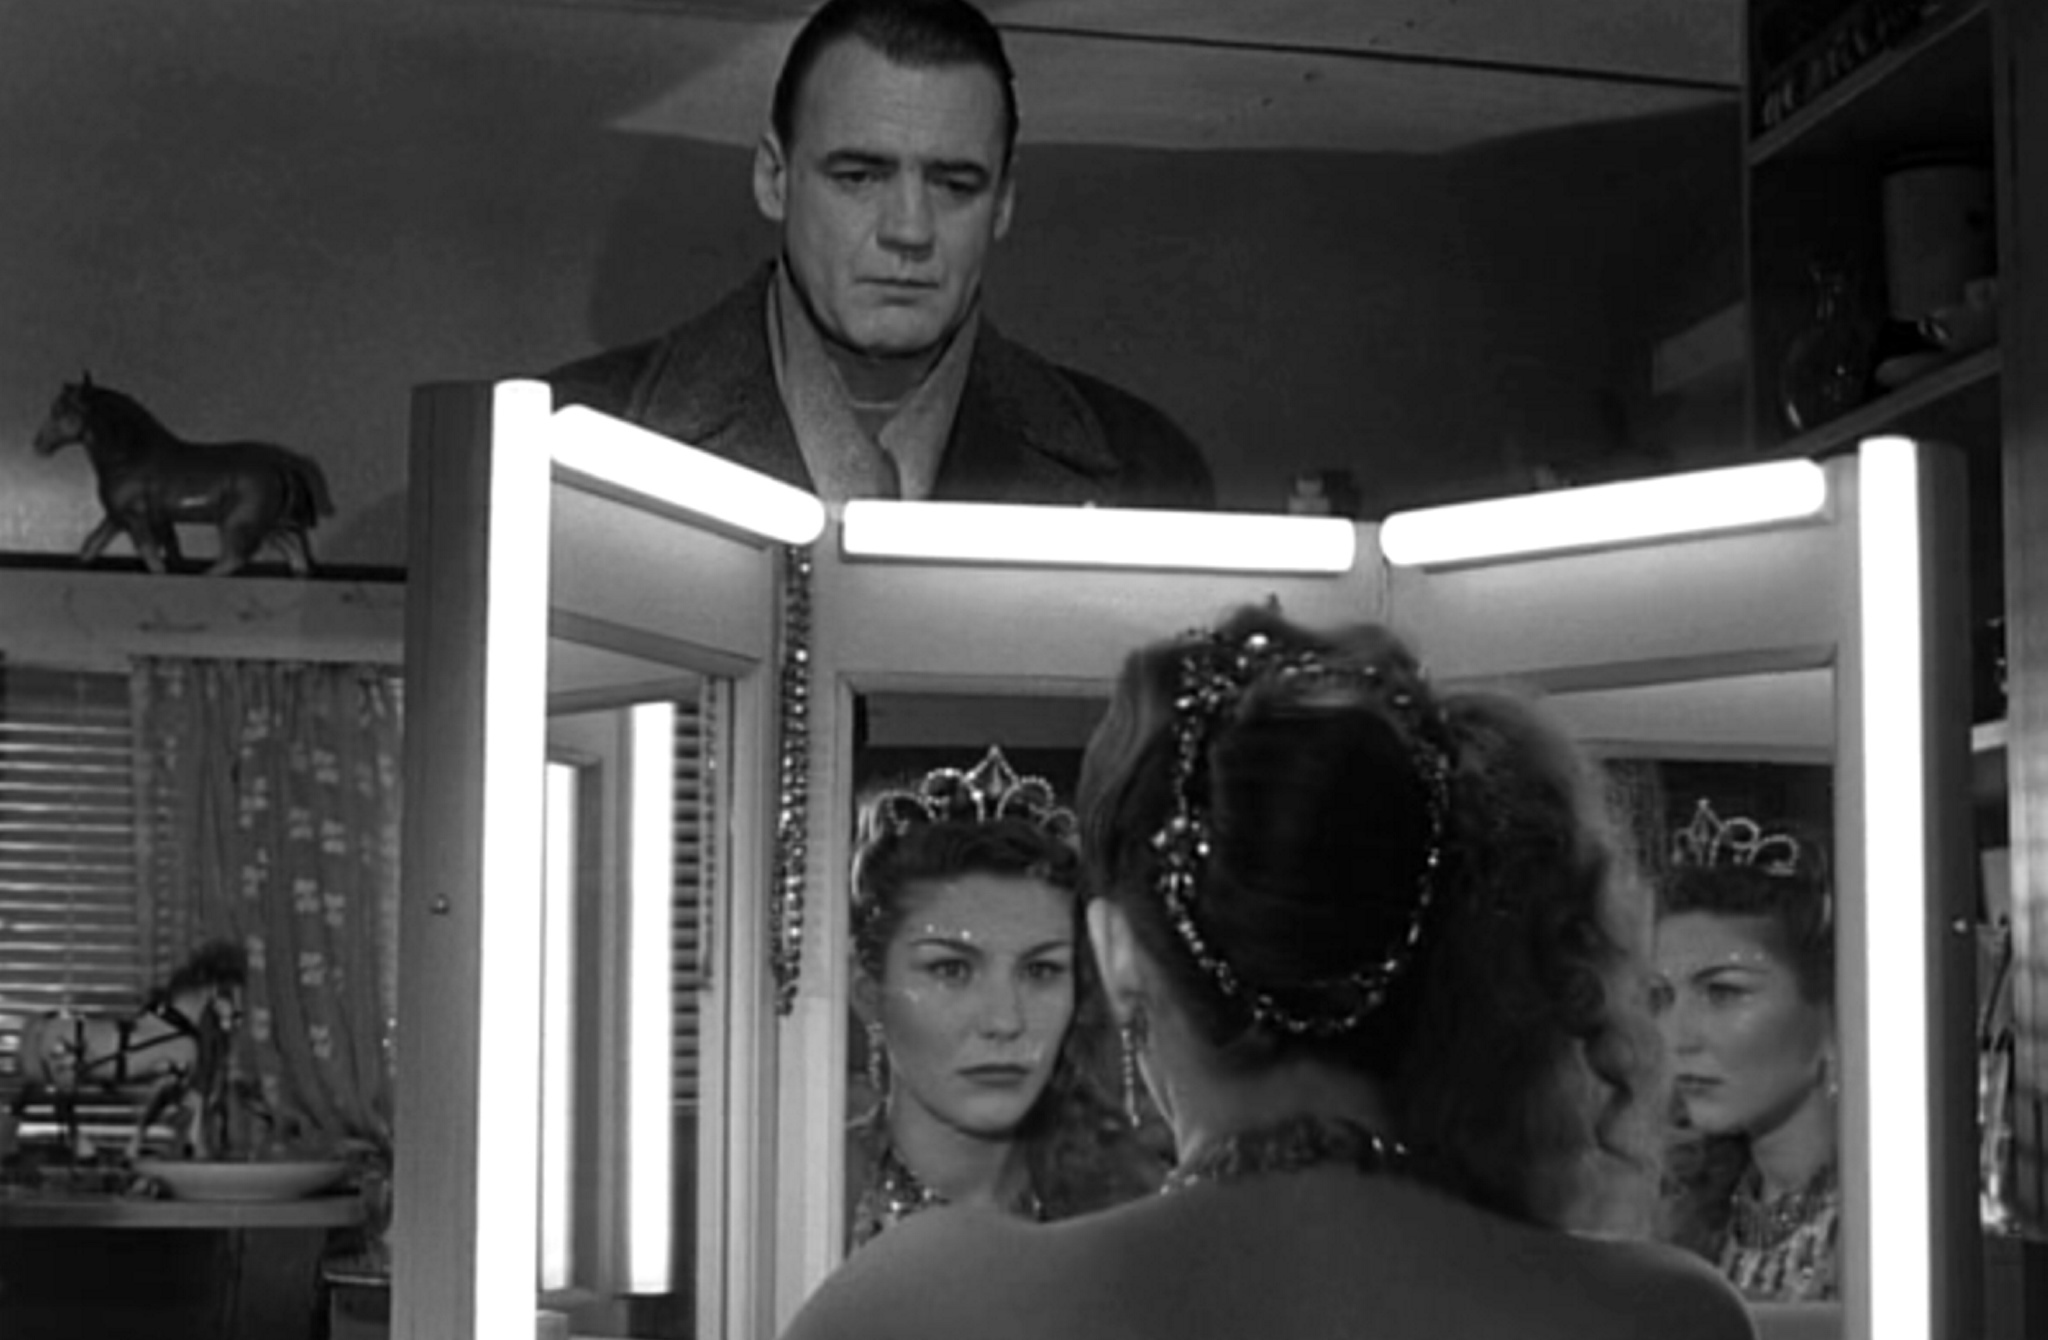 Romantic film: Wings of Desire